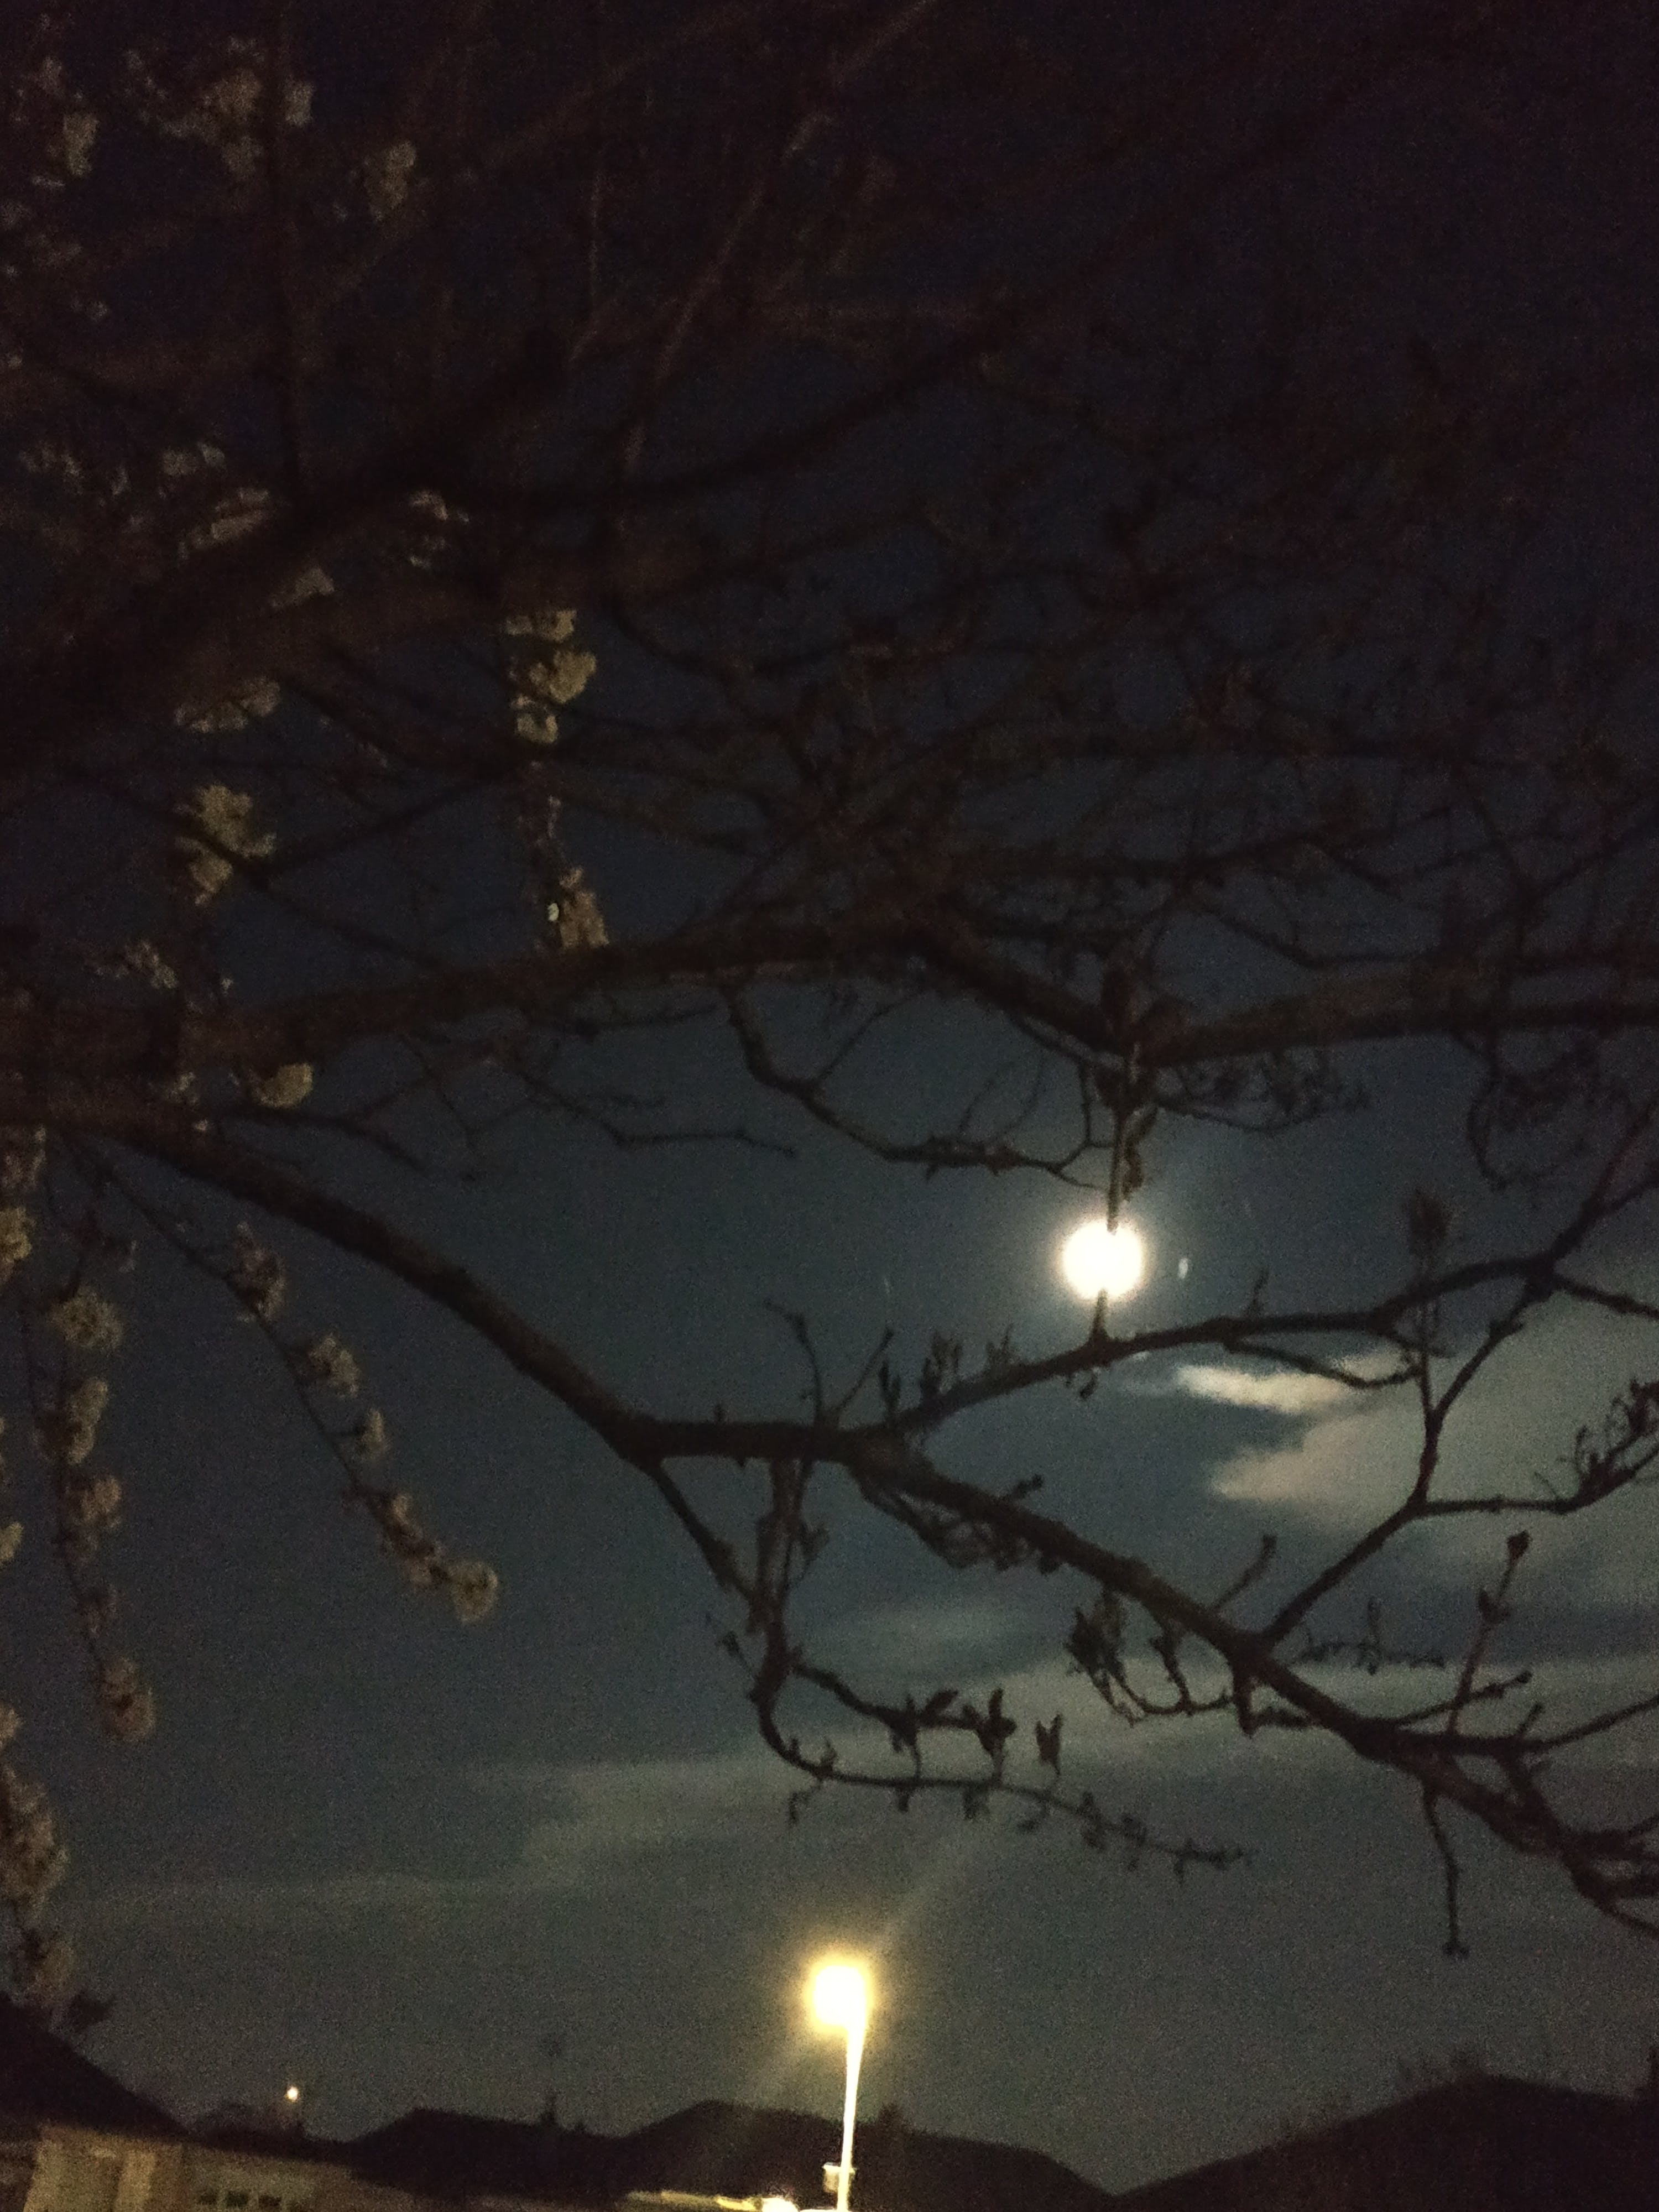 Free stock photo of cherry blossom, lamppost, moon, night